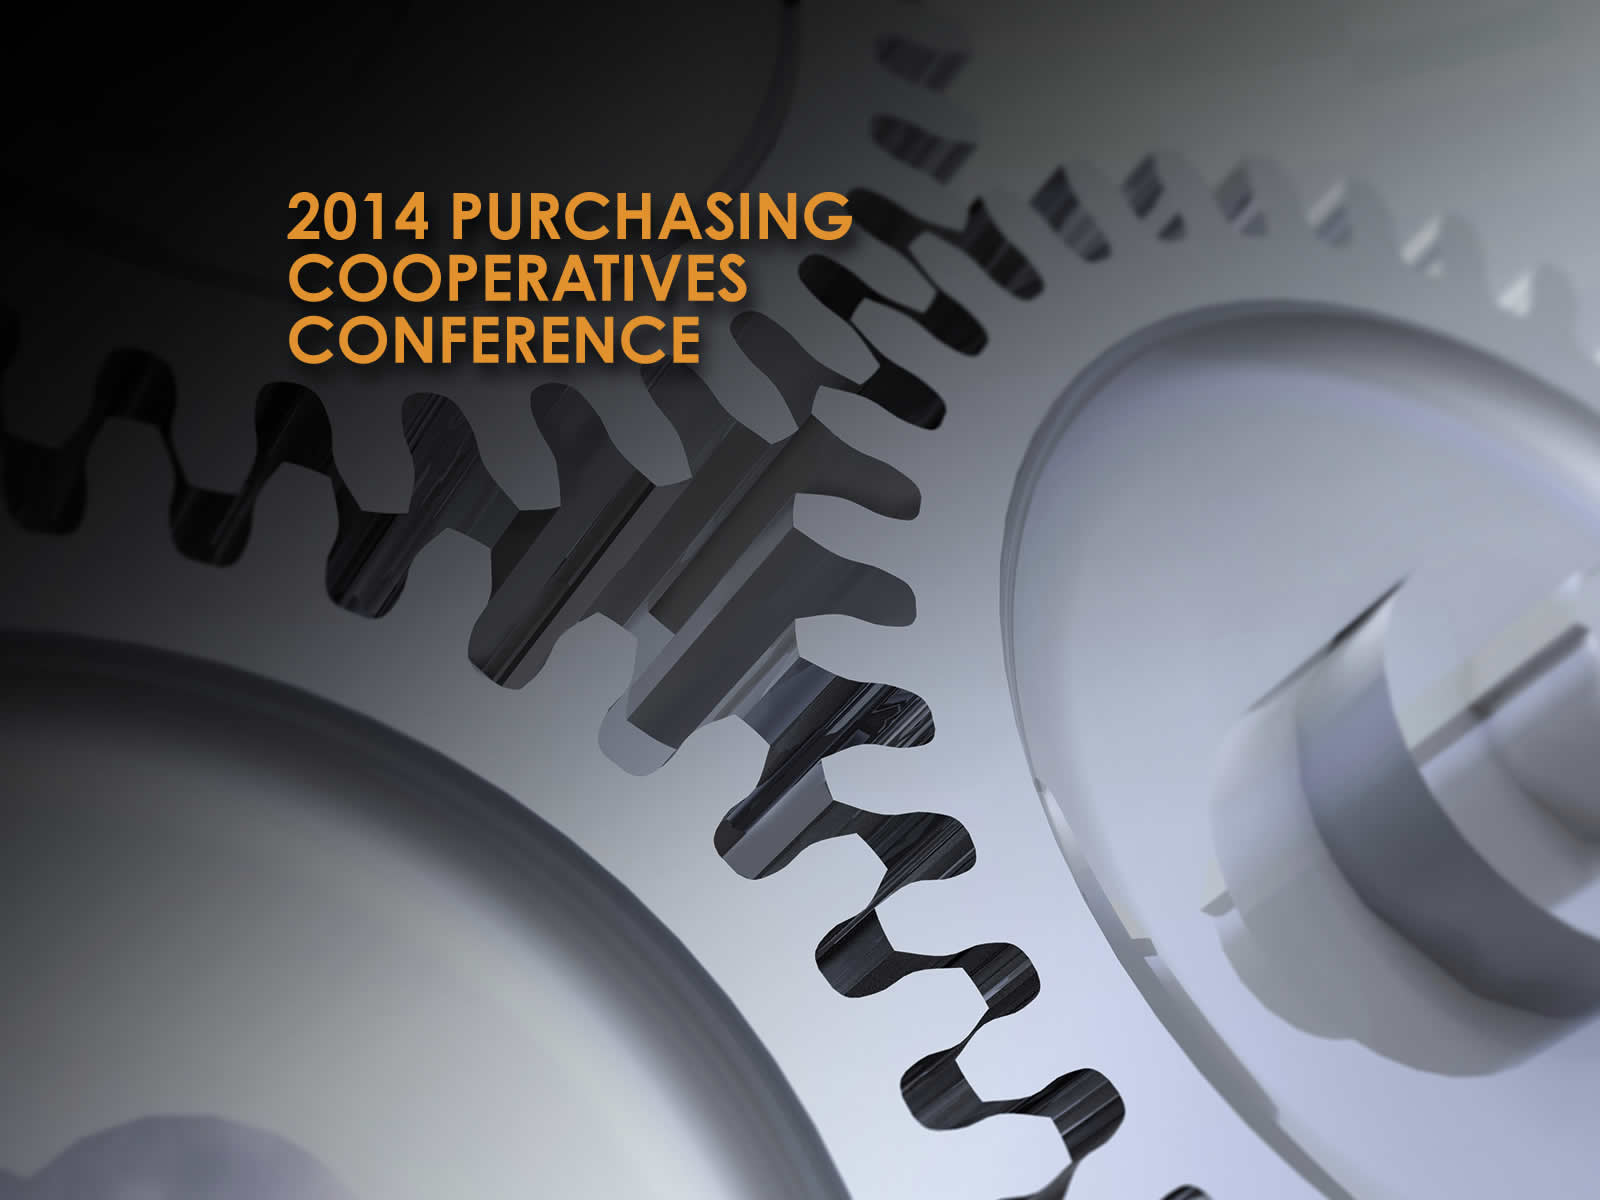 Registration Open for PCC Conference